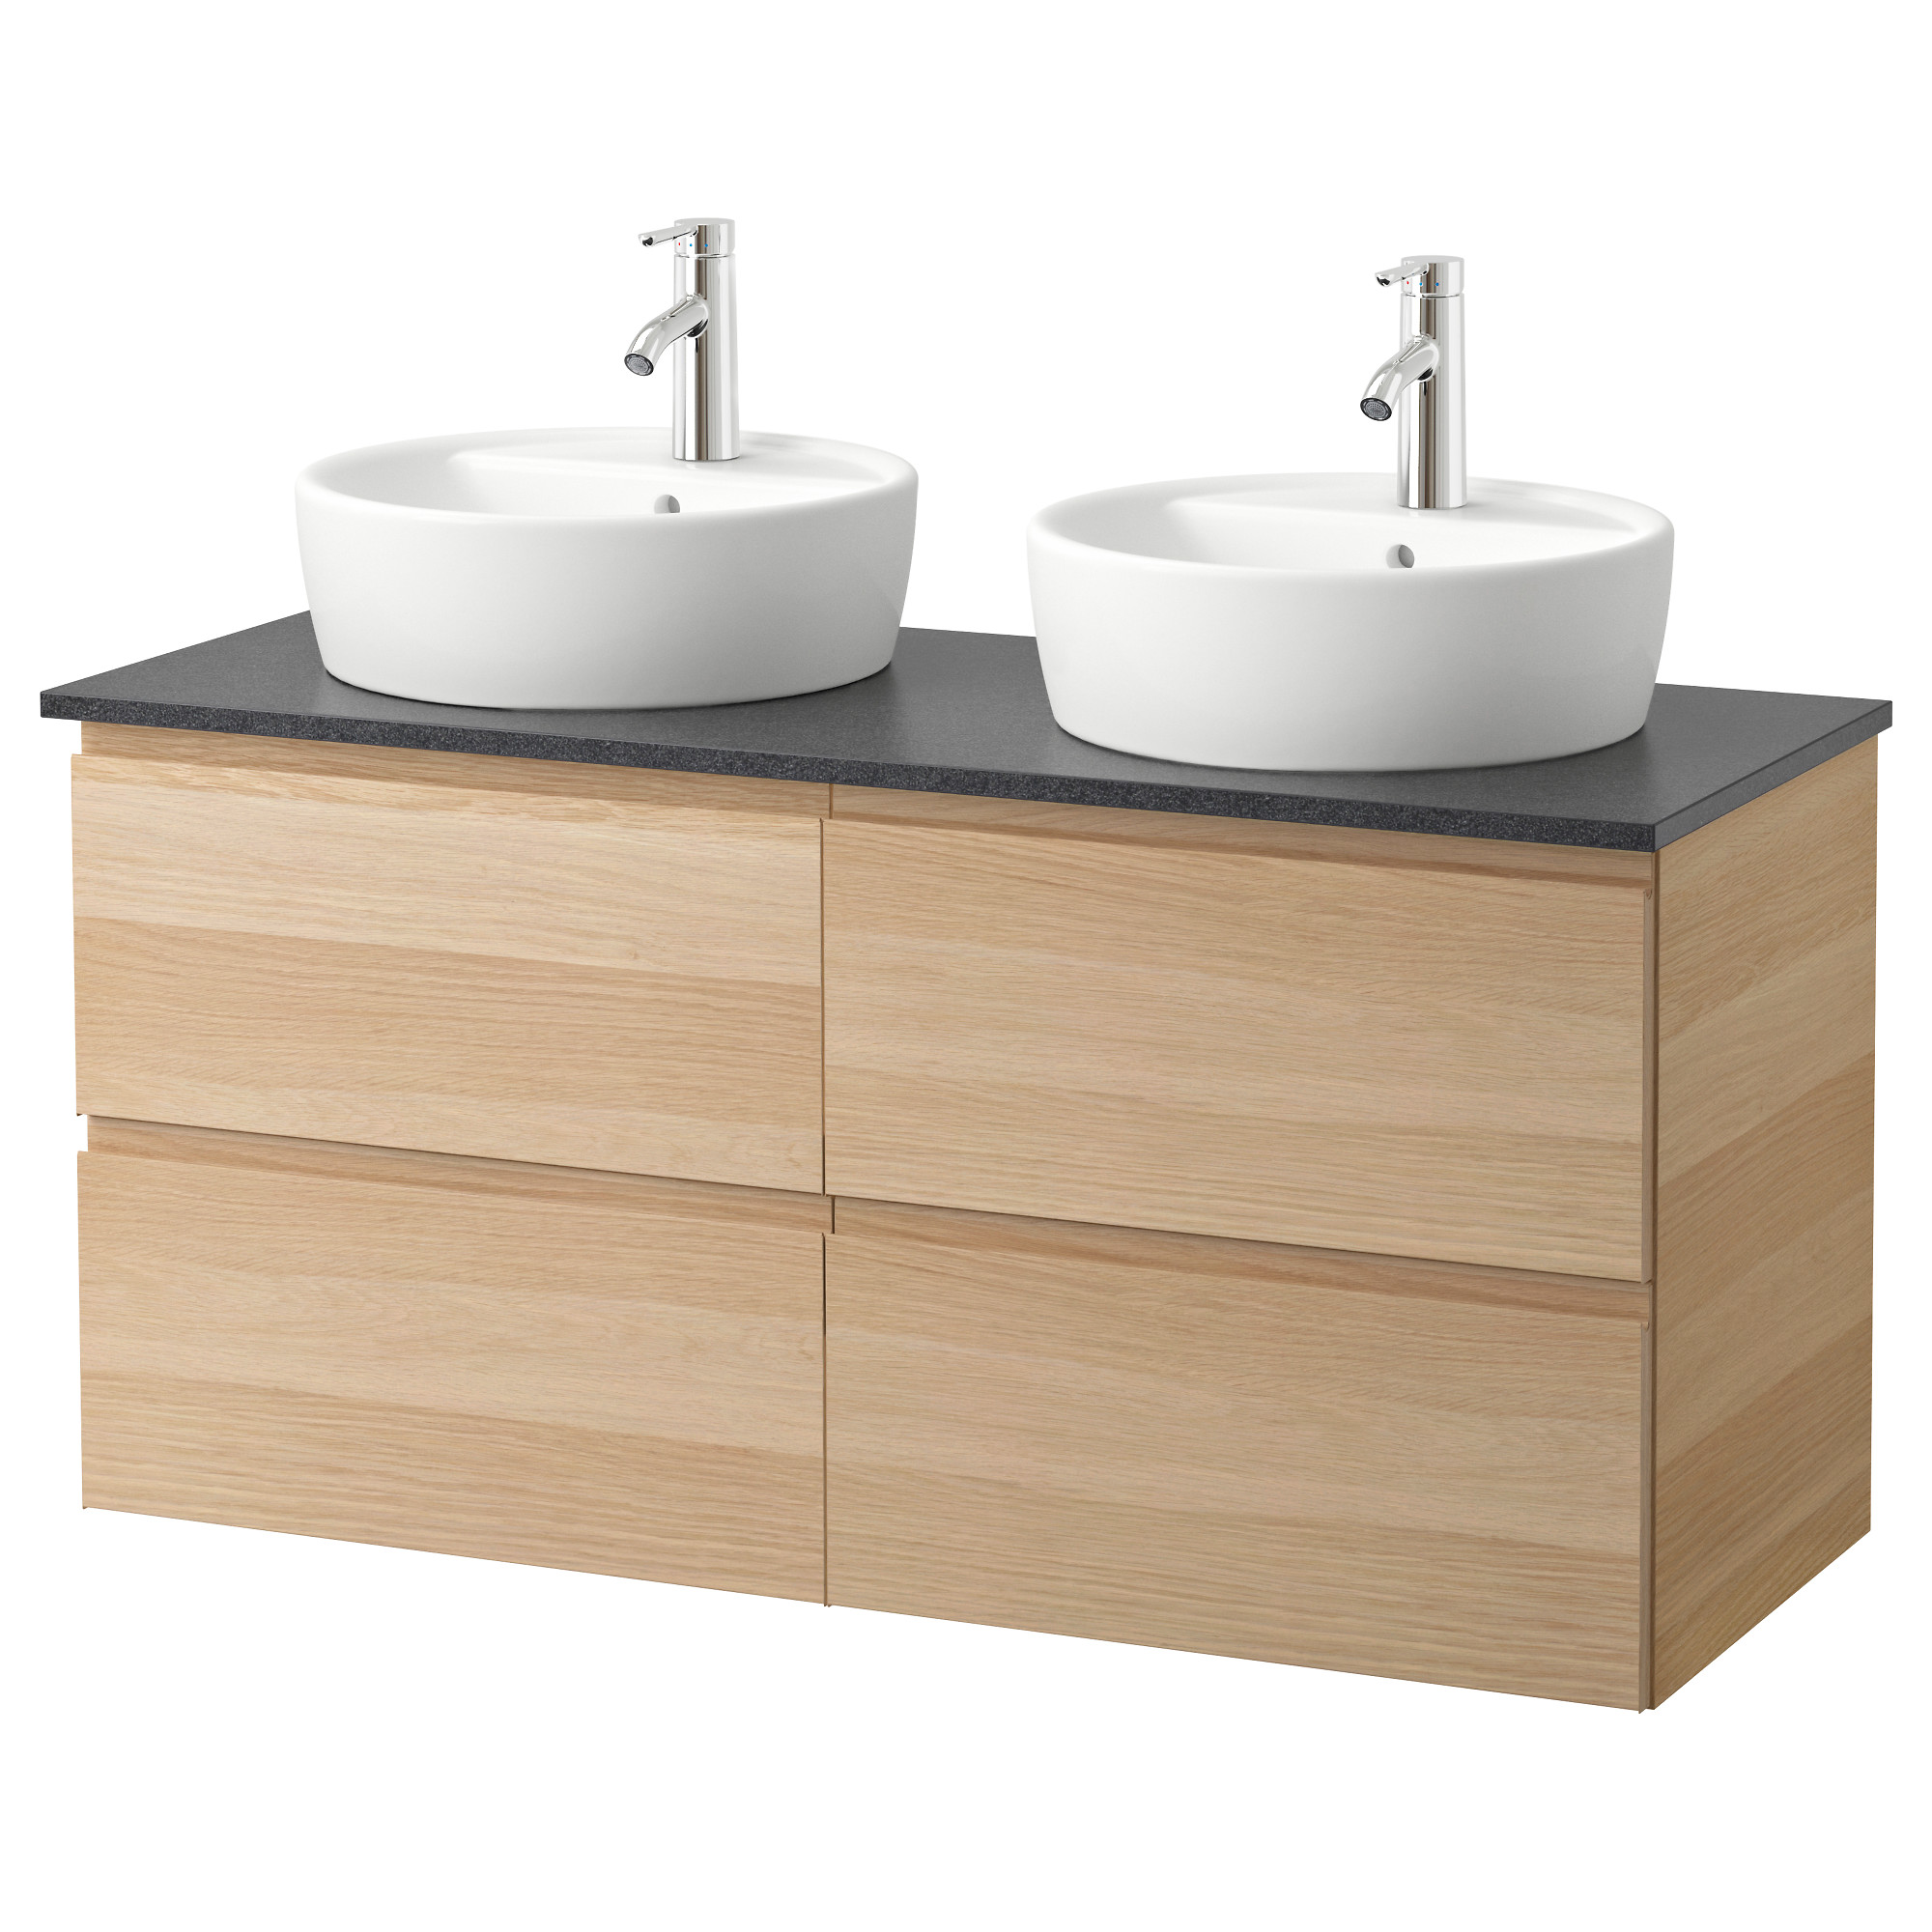 Double vasque salle de bain dimension for Dimension meuble lavabo salle de bain